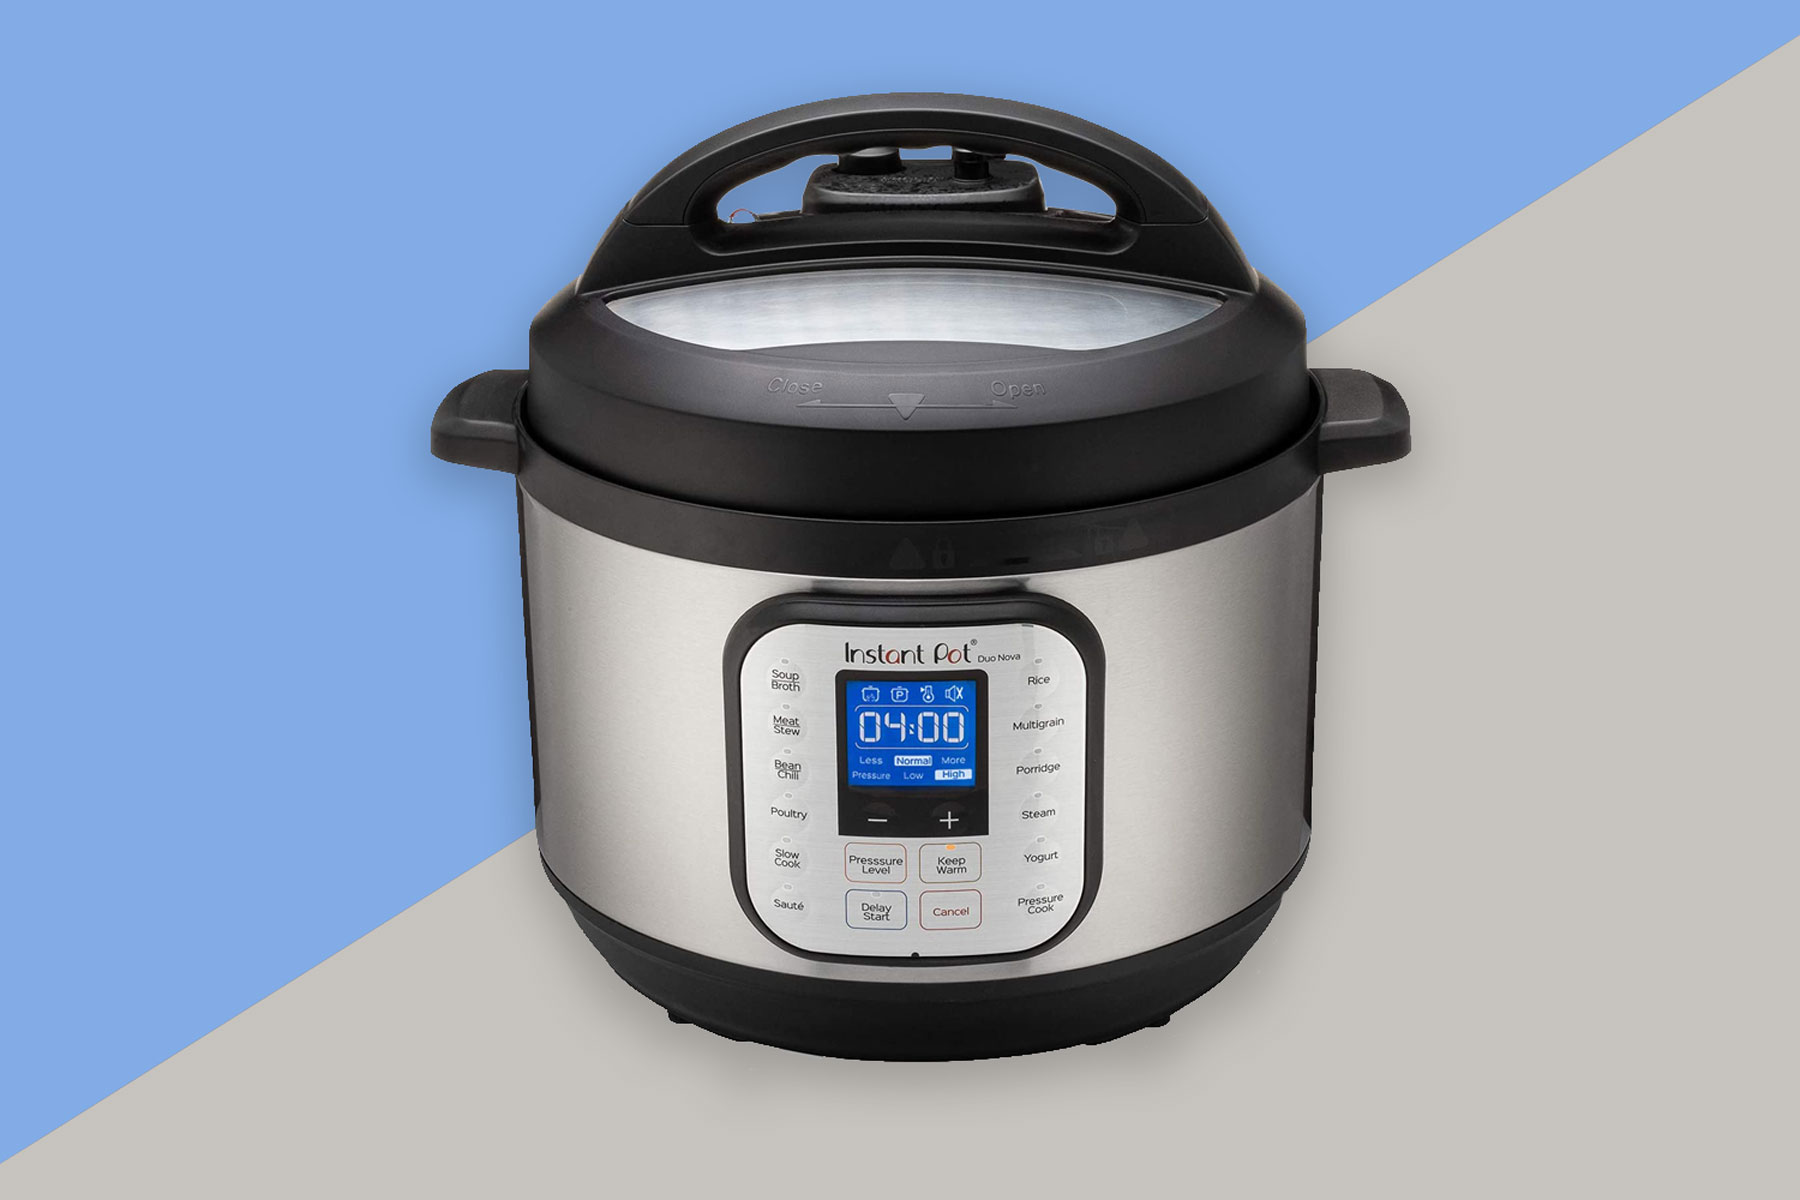 Silver and black Instant Pot pressure cooker